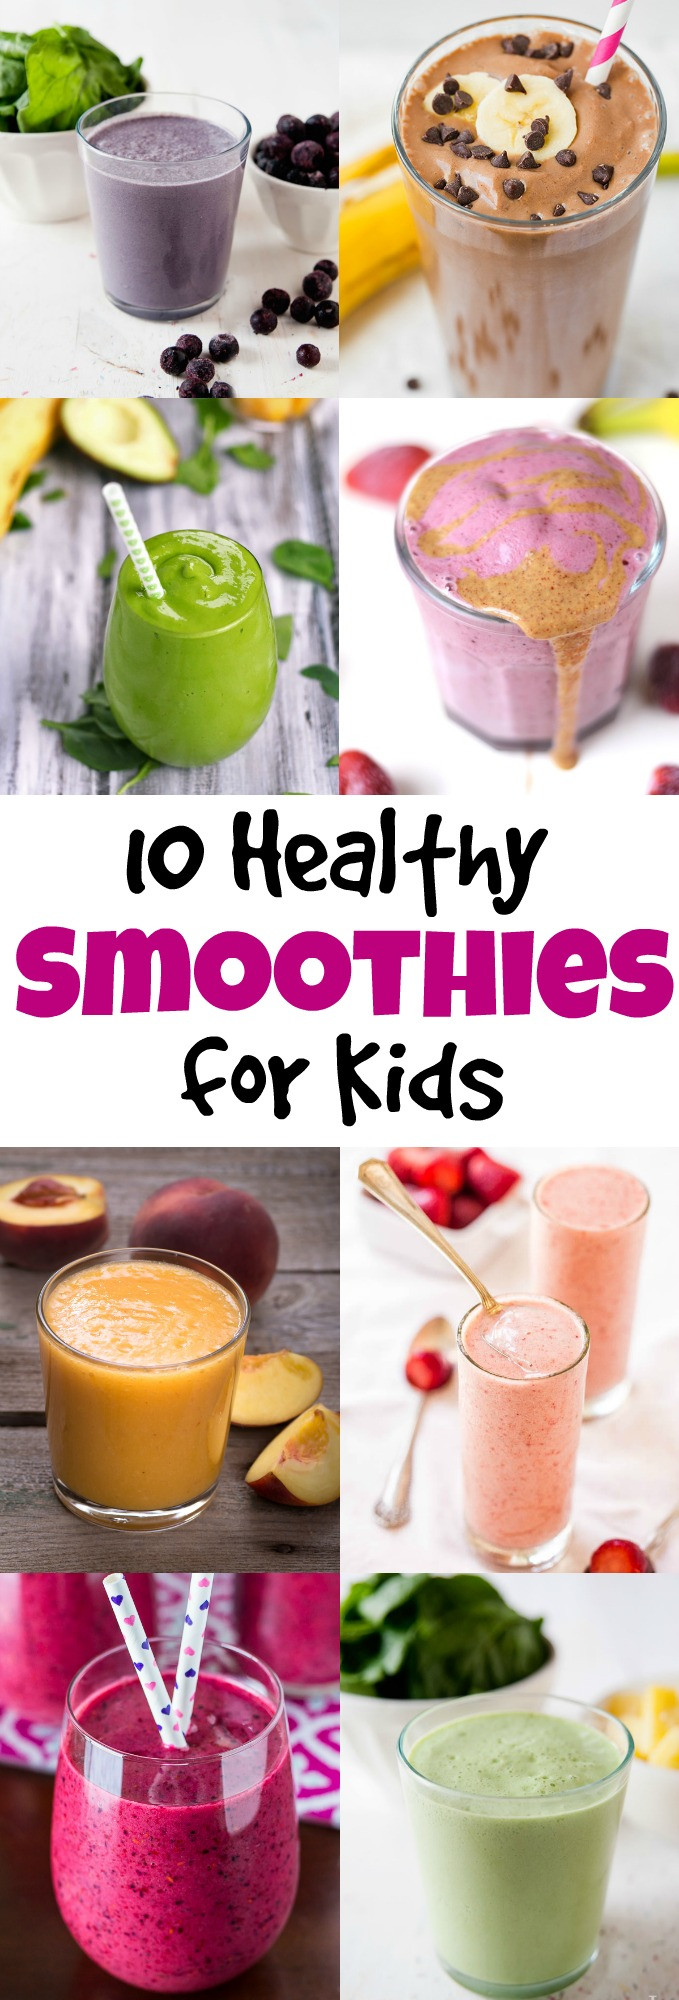 Healthy Kids Smoothies  10 Healthy Smoothies for Kids MOMables Good Food